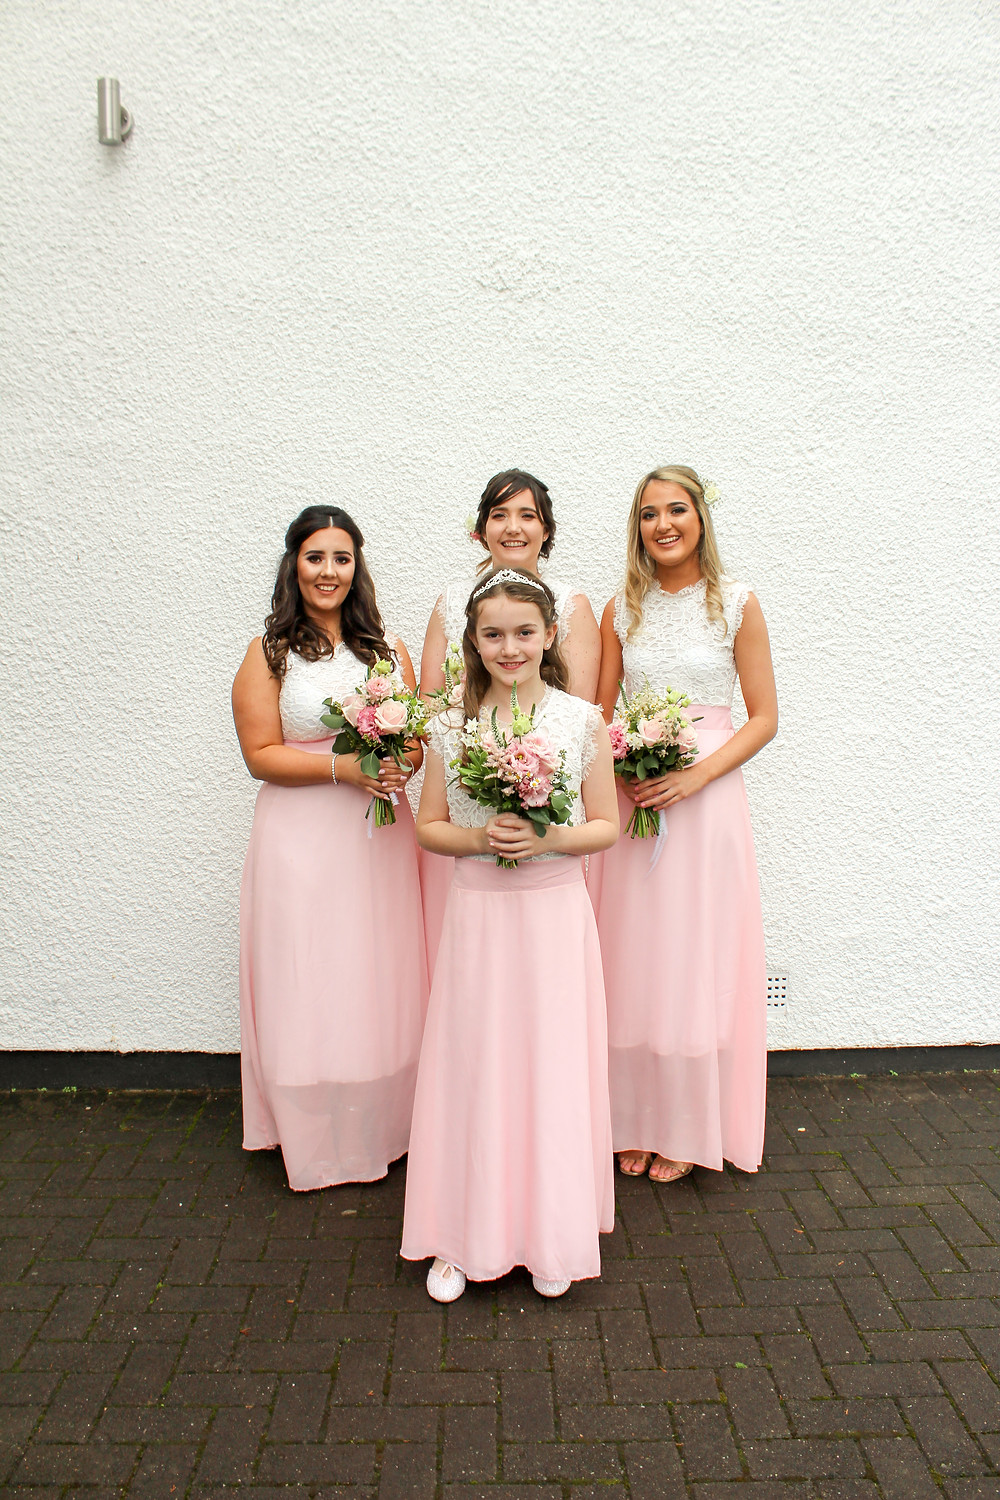 Four girls stand against a white wall. all four are wearing matching dresses with a white lace top and pink long skirts, they are holding pink flowers